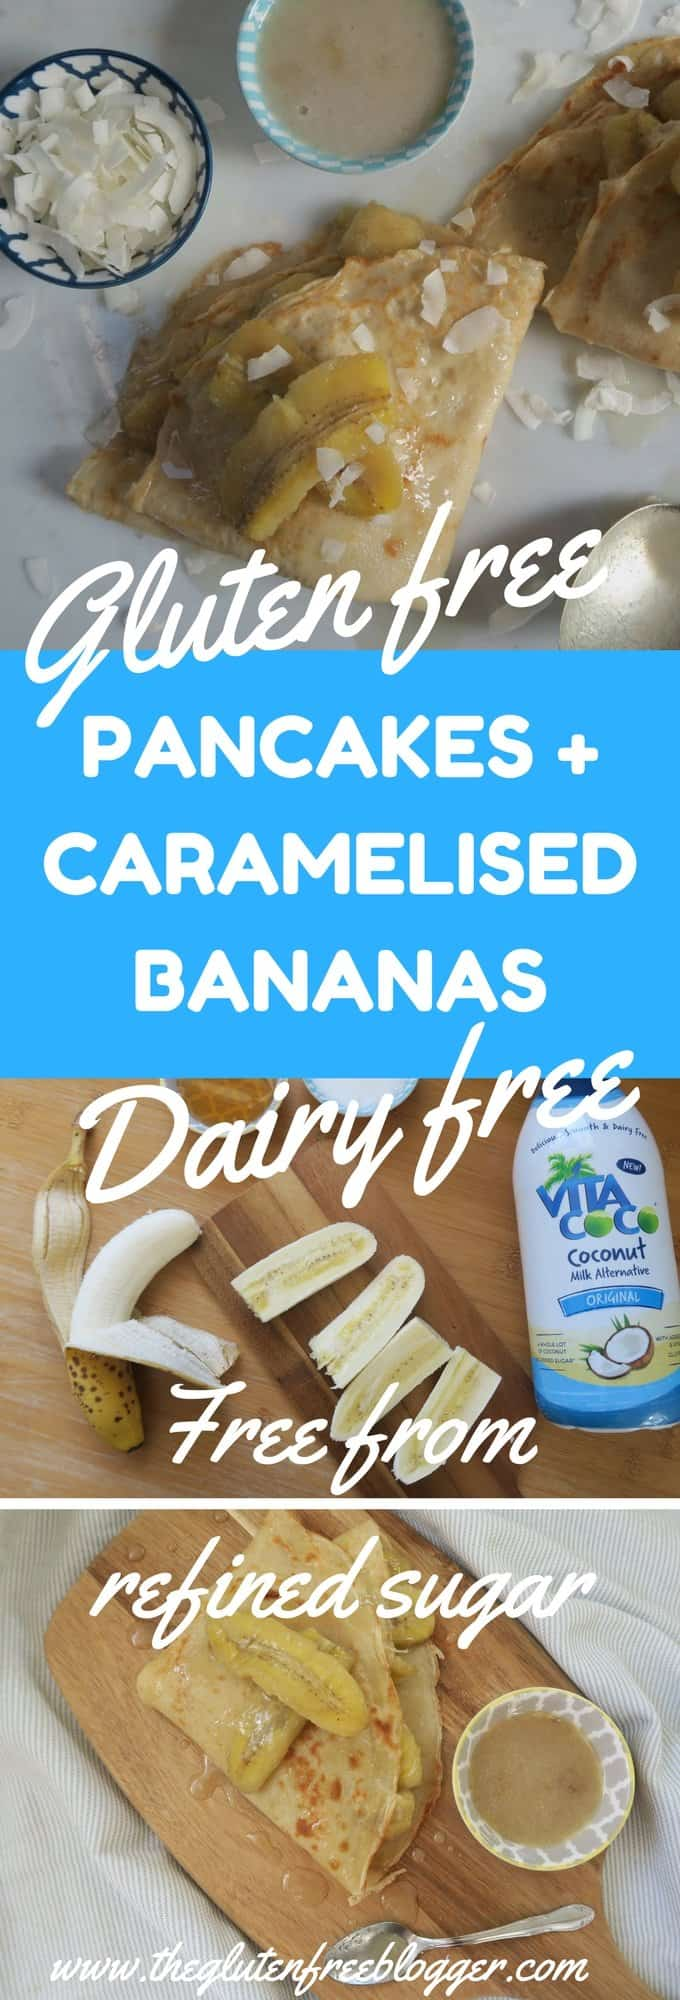 Gluten free, dairy free pancakes with caramelised bananas. With Vita Coco. - www.theglutenfreeblogger.com (1)